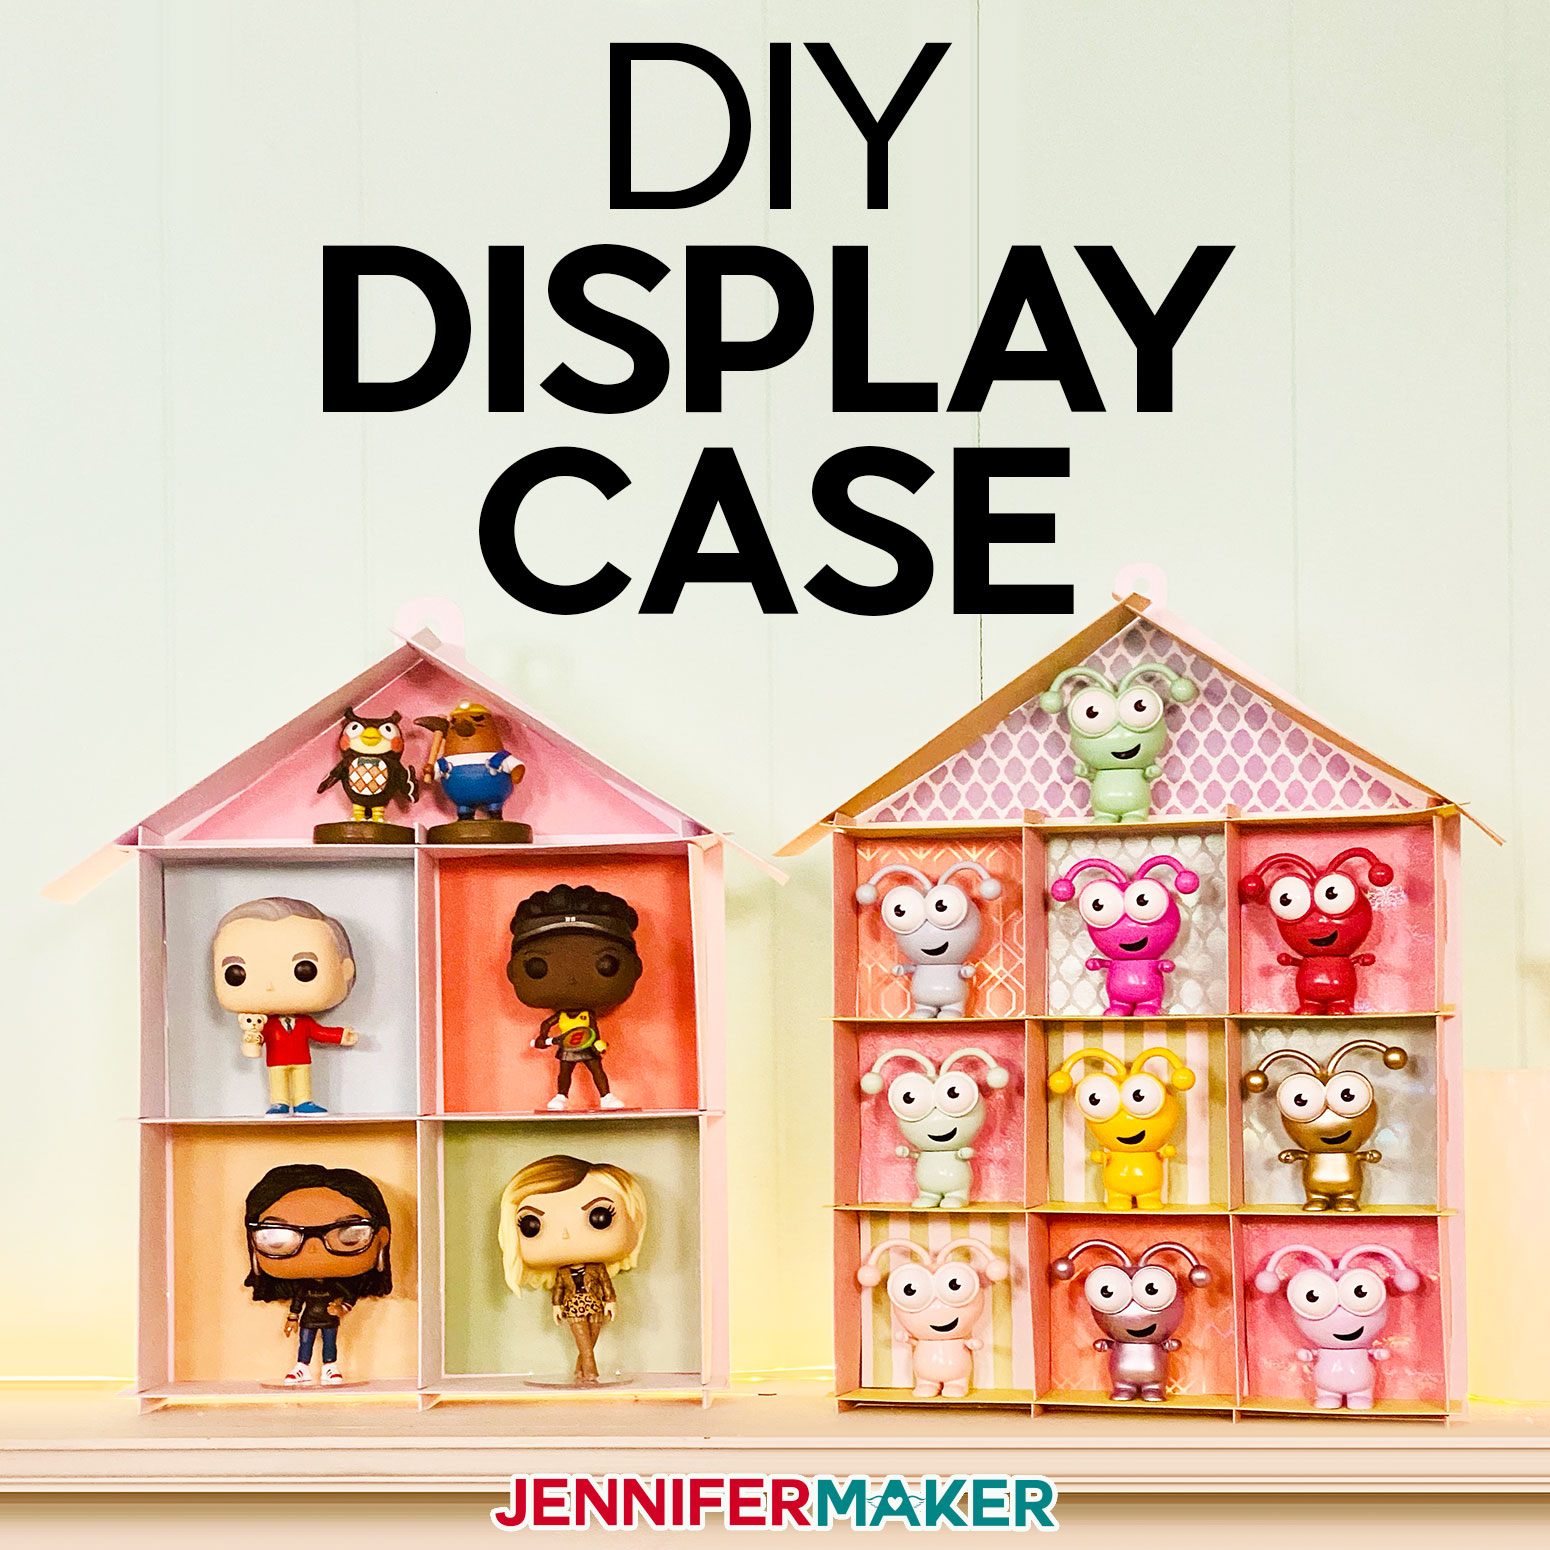 DIY Display Case for Cricut Cuties and Funko Pop Figures - Made from Kraft Board or Cardstock cut on a Cricut with a free SVG cut file!